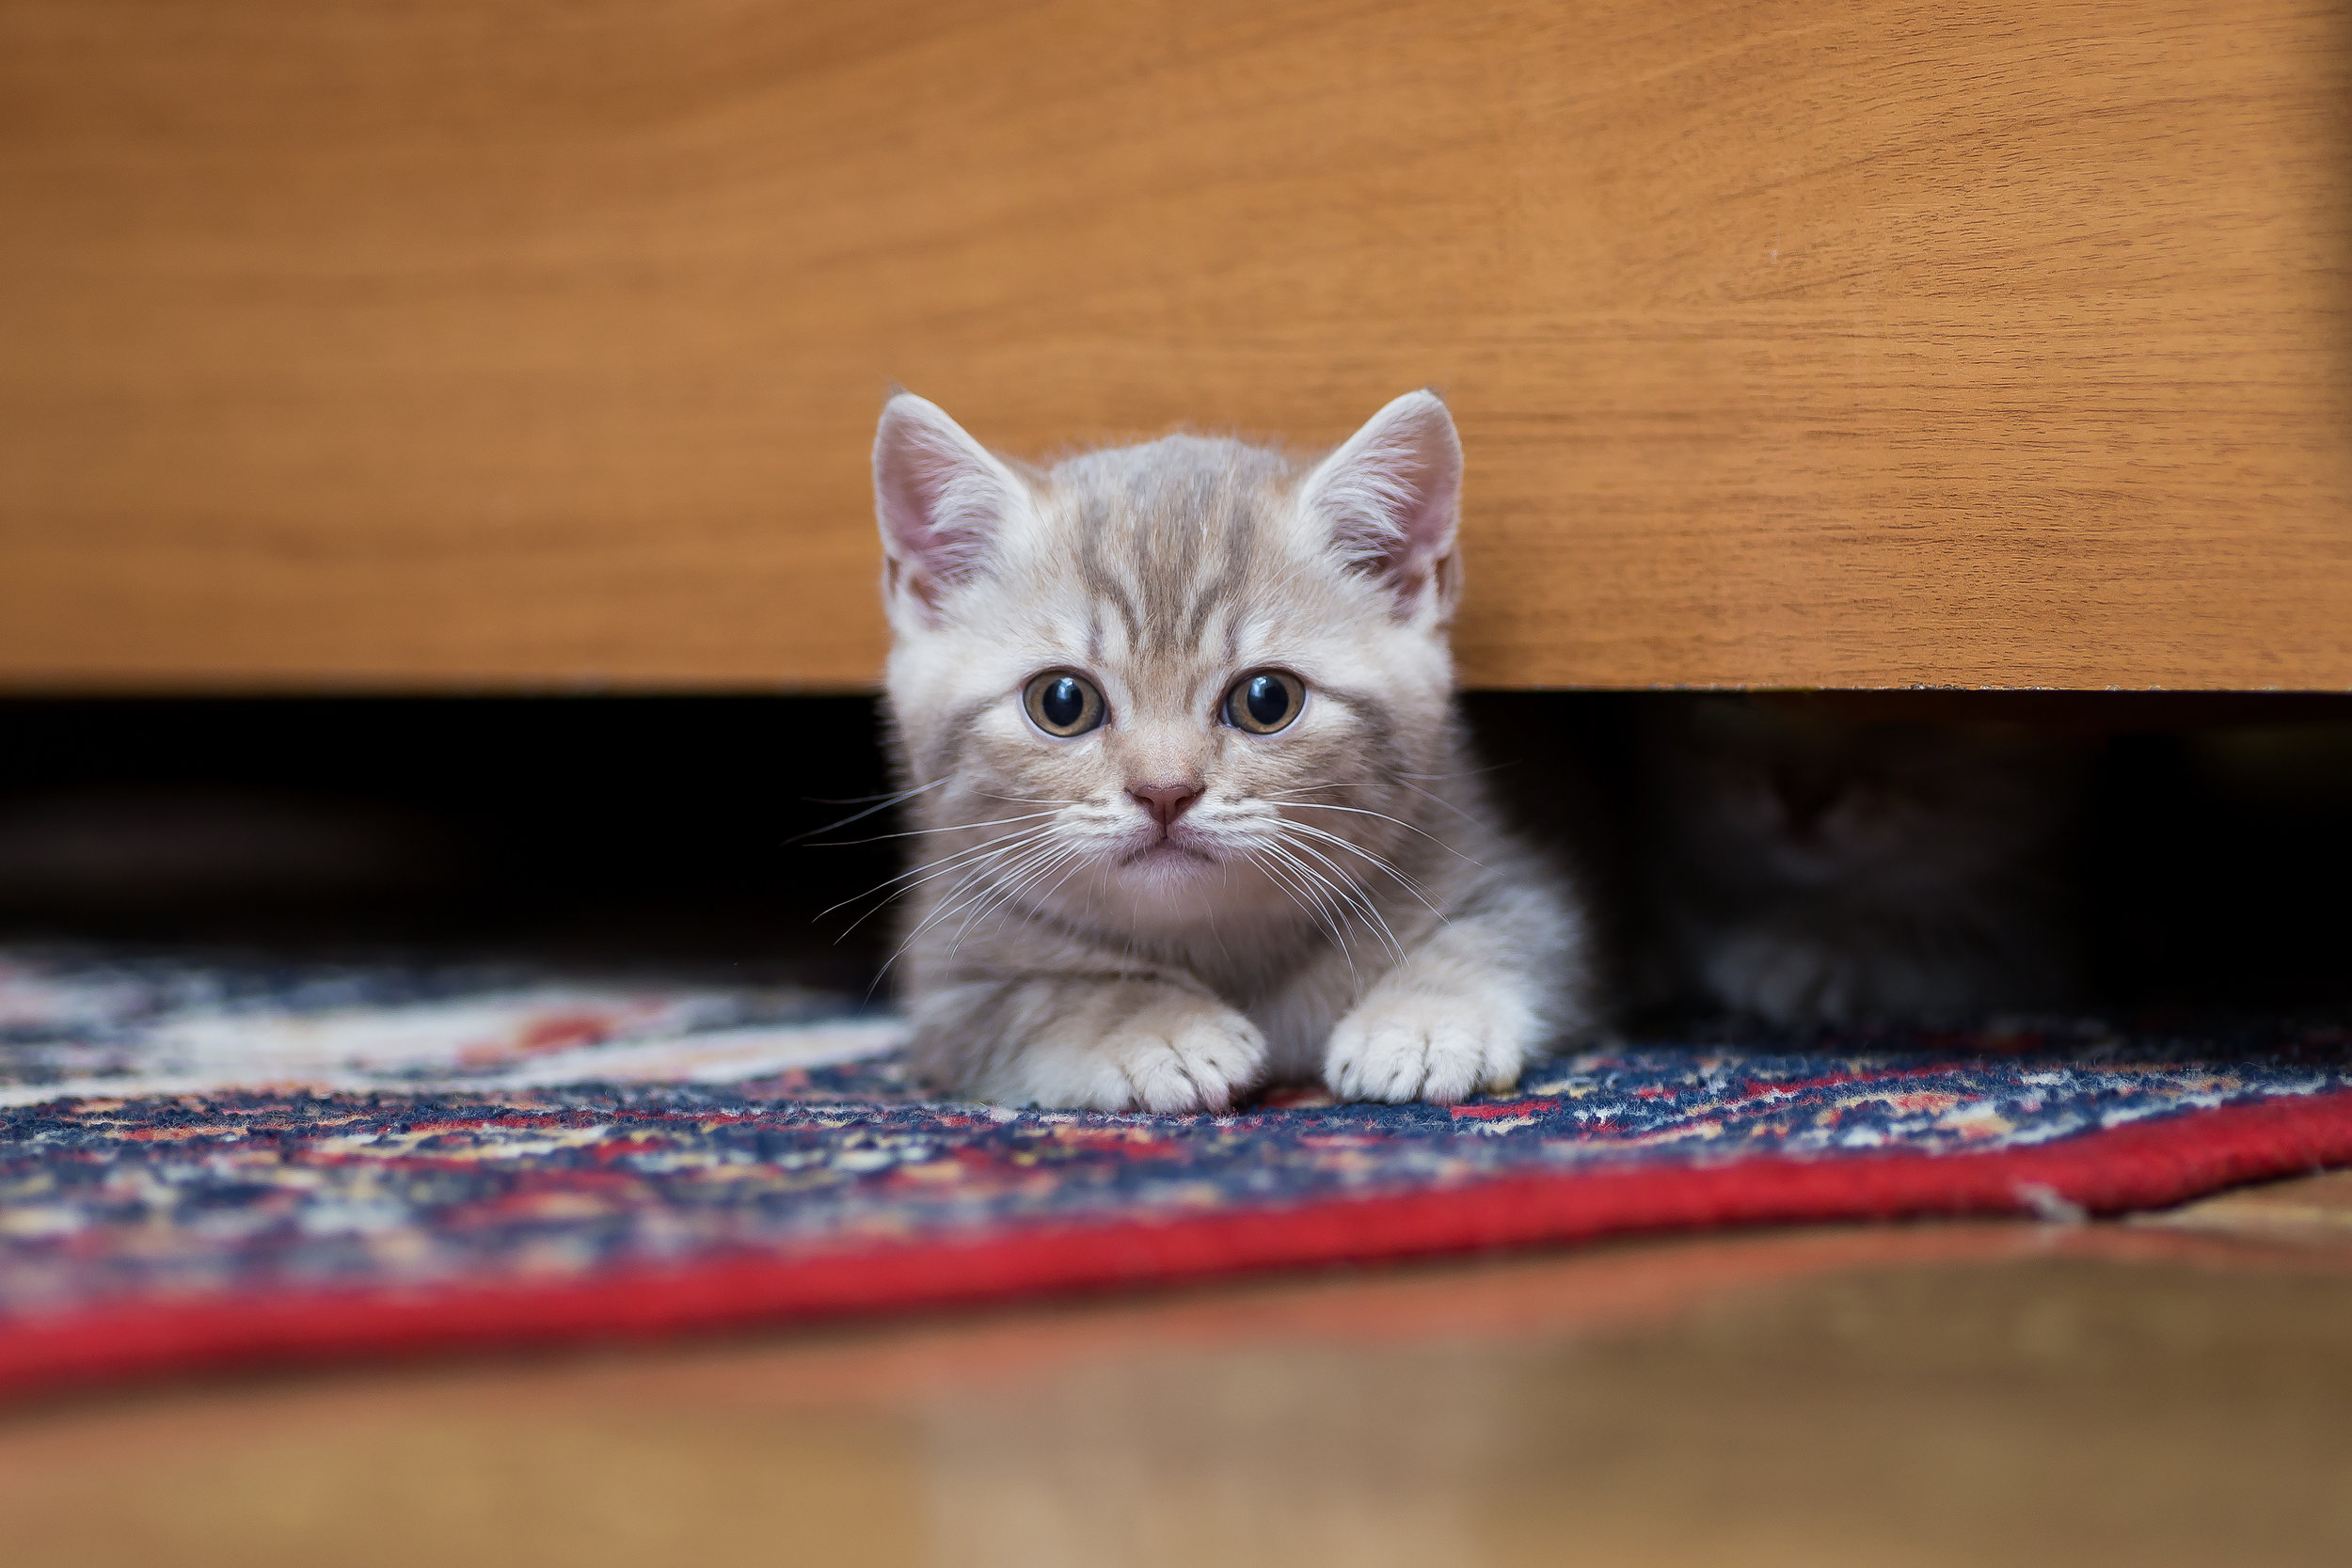 Kitten hiding under bed